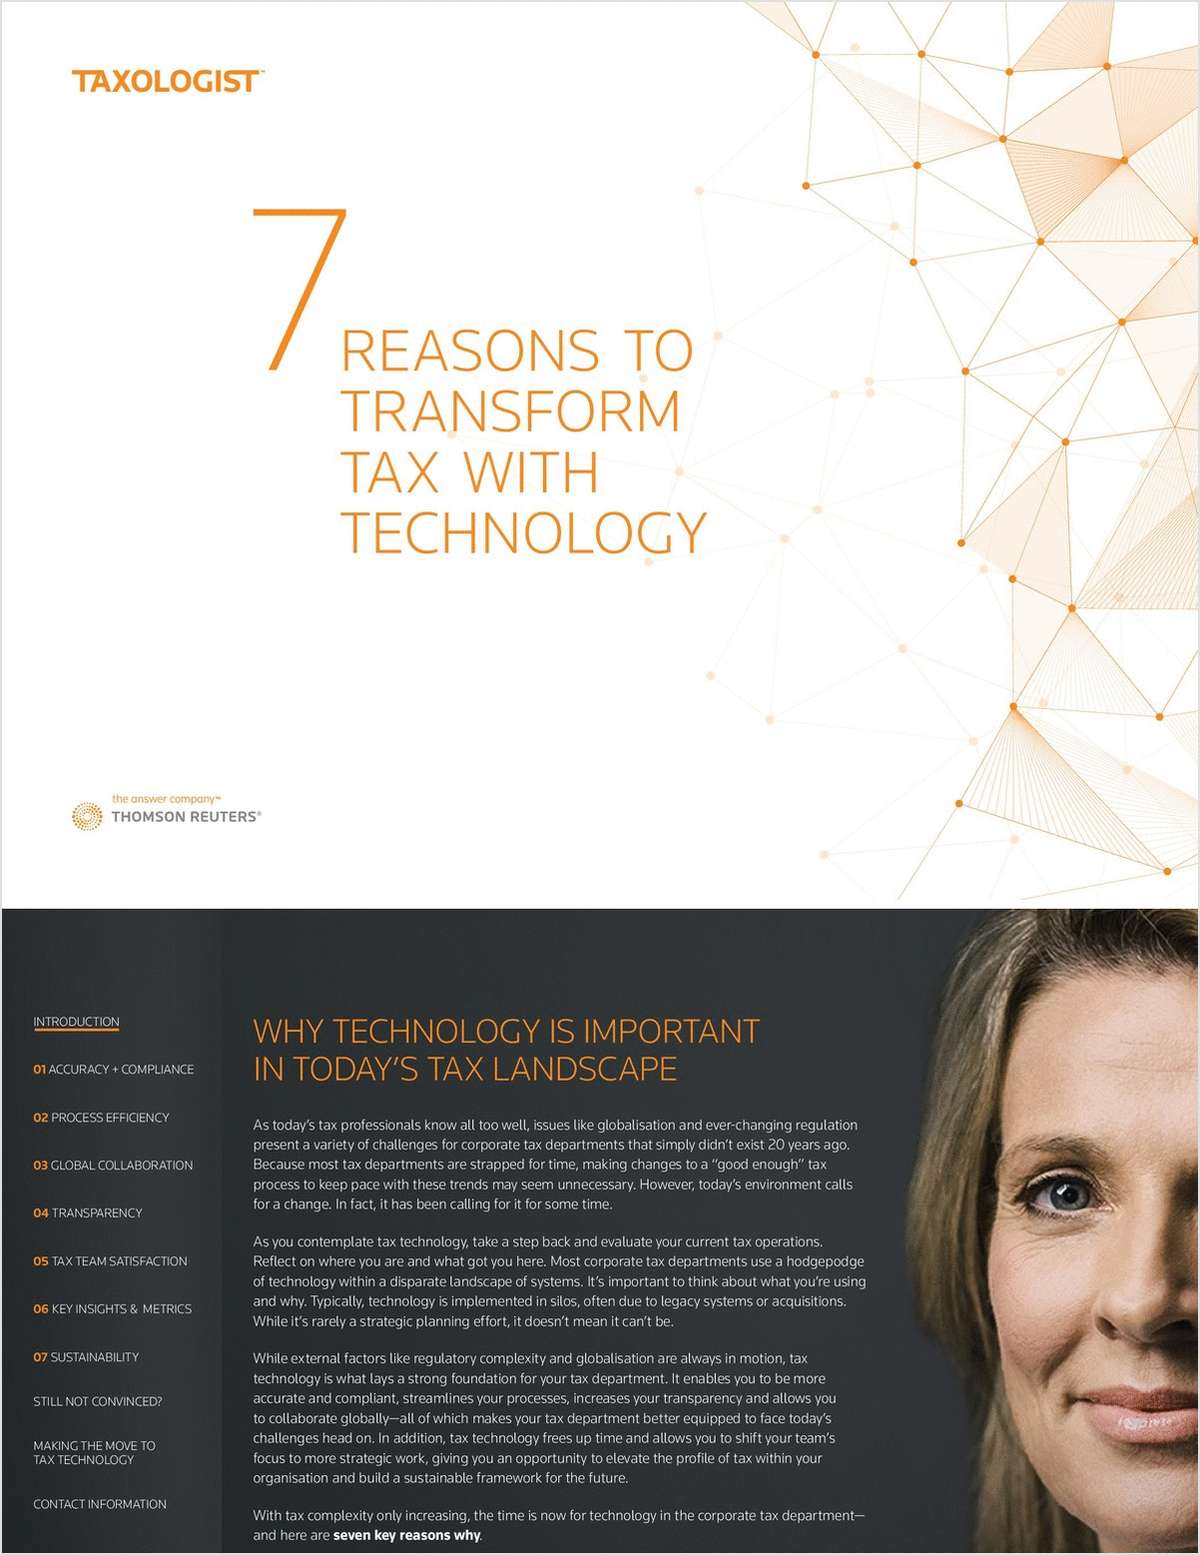 7 REASONS TO TRANSFORM TAX WITH TECHNOLOGY